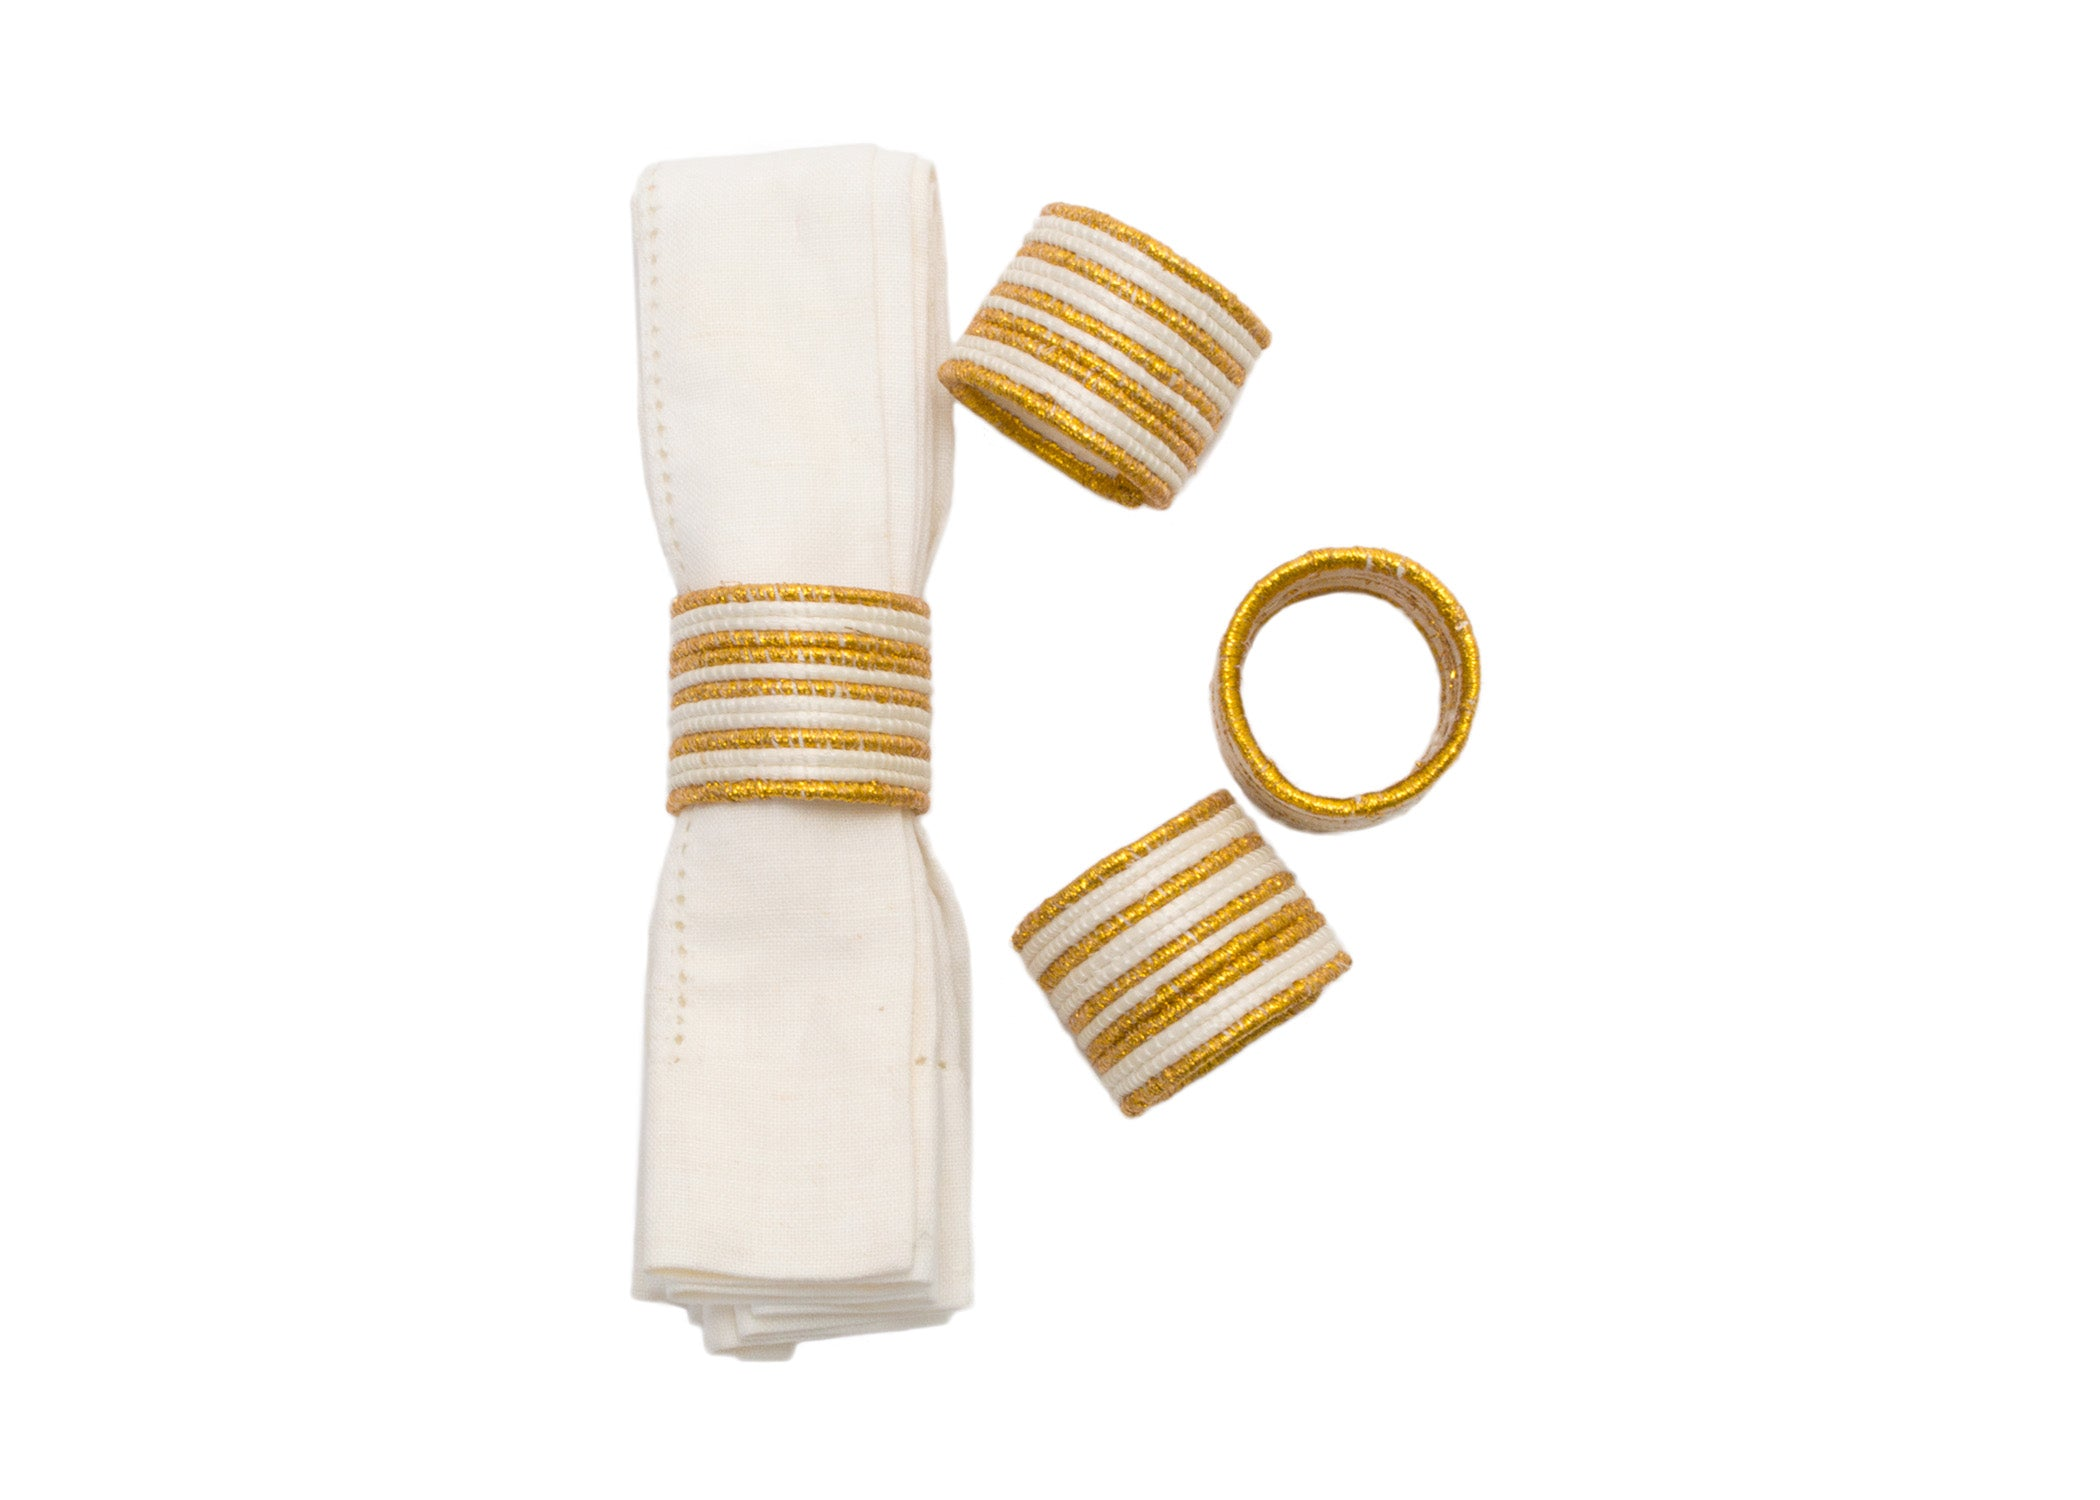 Metallic Gold Napkin Rings, Set of 4 - KAZI - Artisan made high quality home decor and wall art